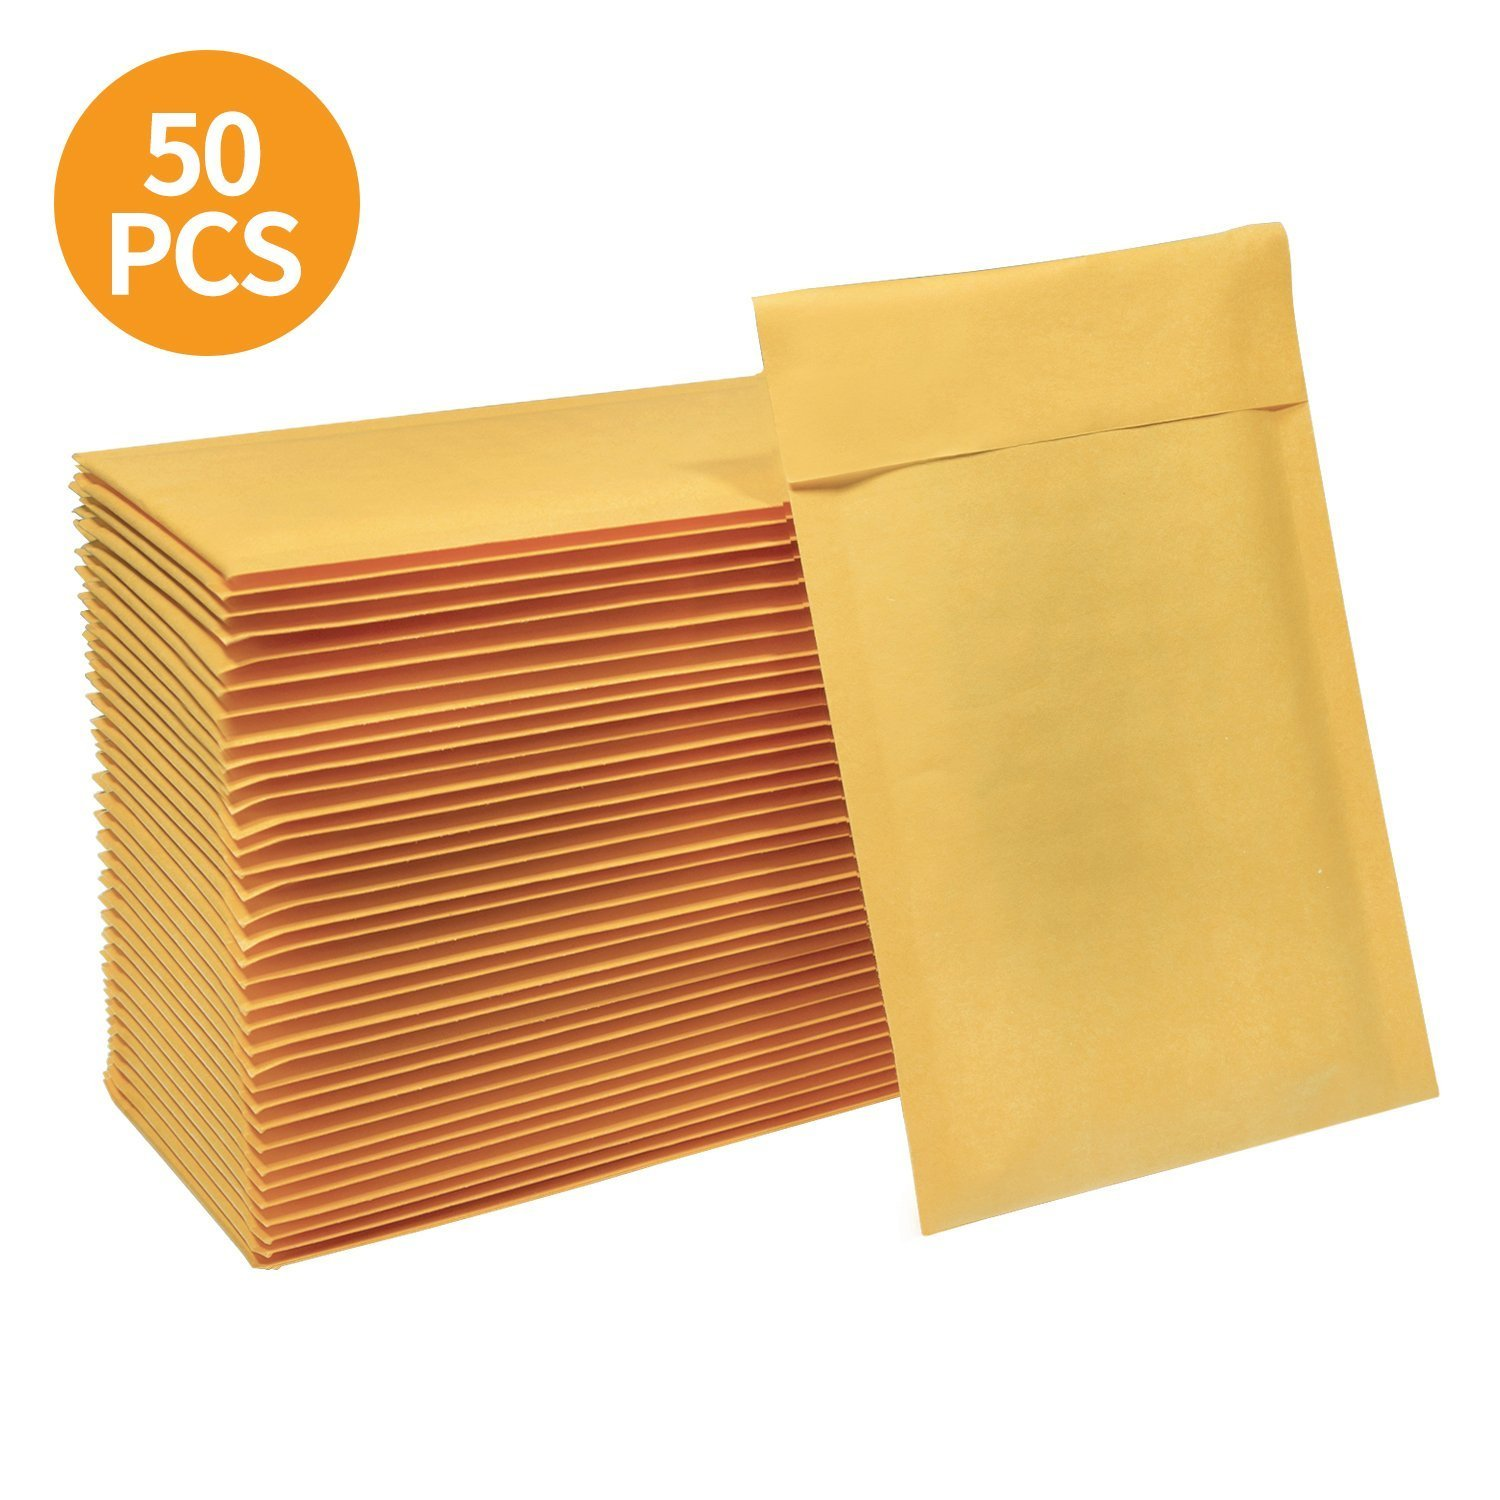 HBlife 4x8 Inches Kraft Bubble Mailers Self Seal Padded Envelopes Shipping Envelopes Mailing Bags, Pack of 50